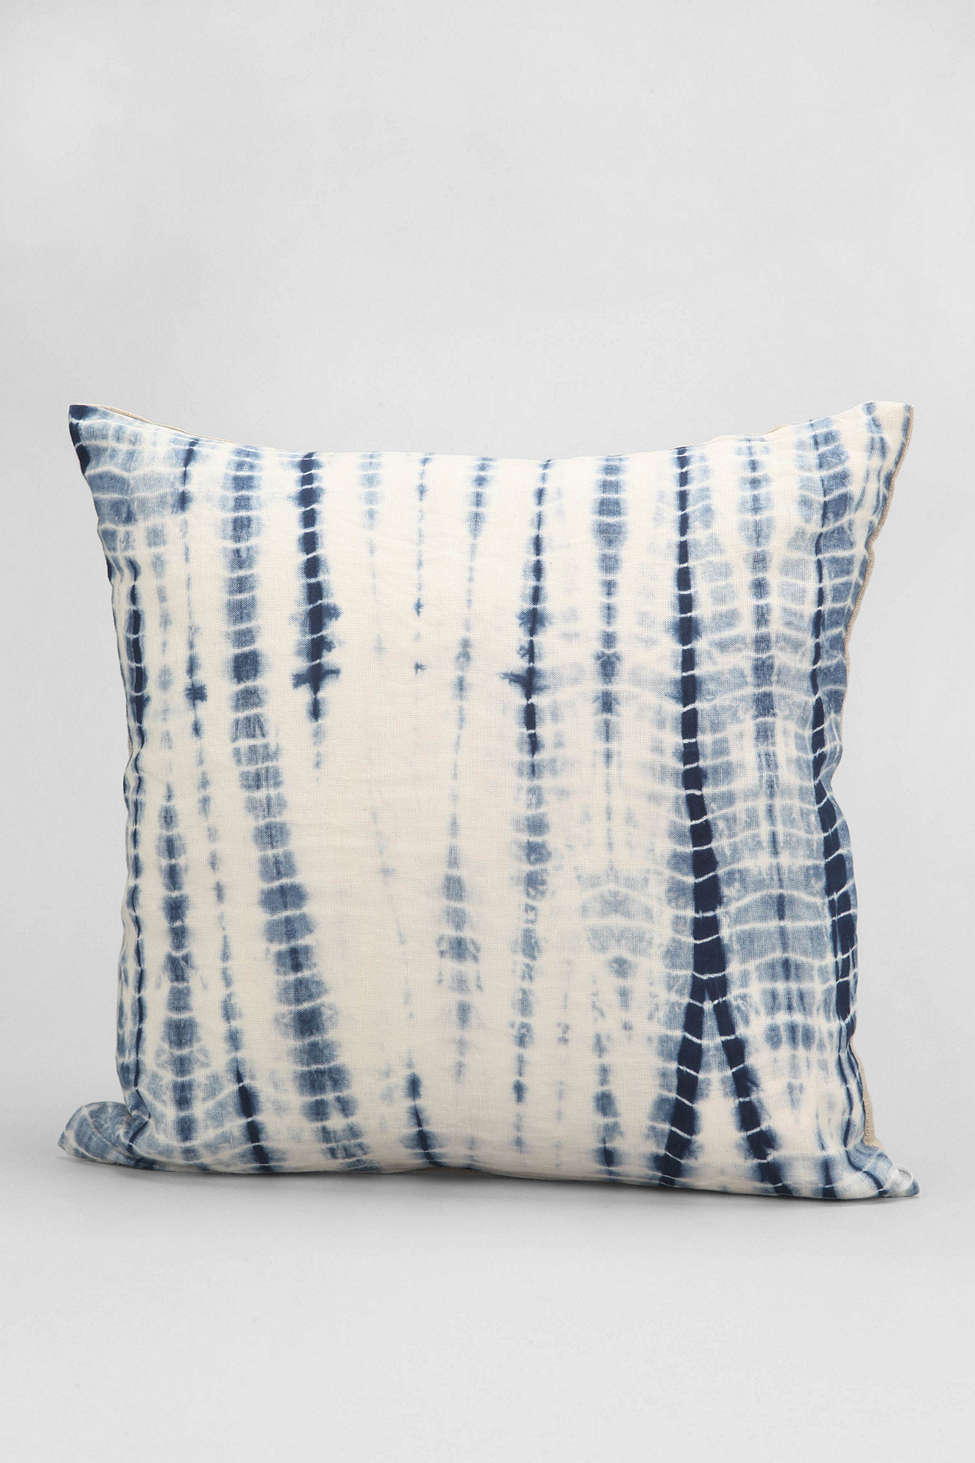 Shibori streak pillow from Urban Outfitters